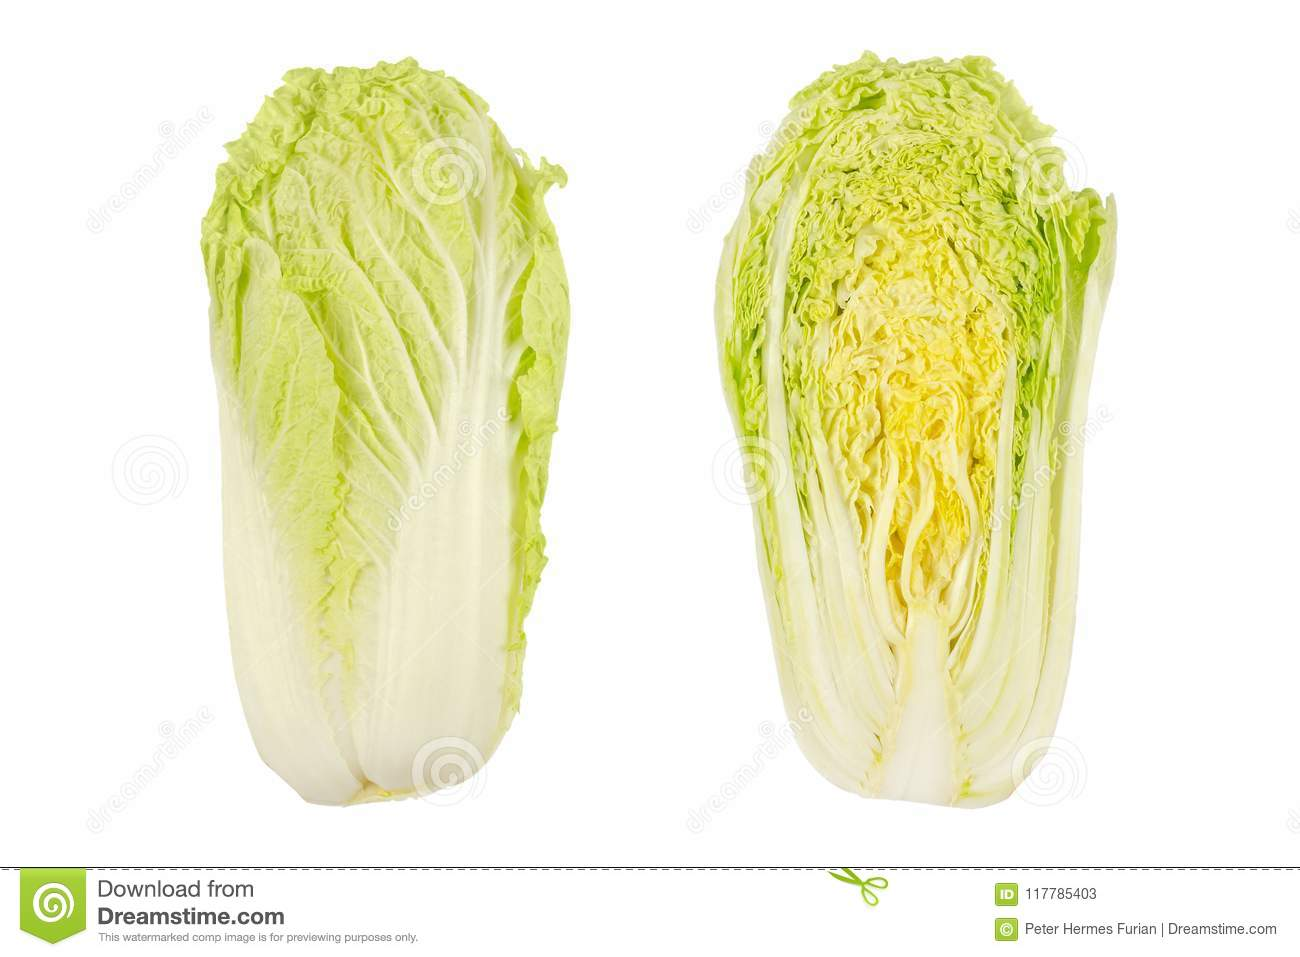 Napa Cabbage Whole And Half Chinese Cabbage Top View Stock Image Image Of Uncooked Organic 117785403